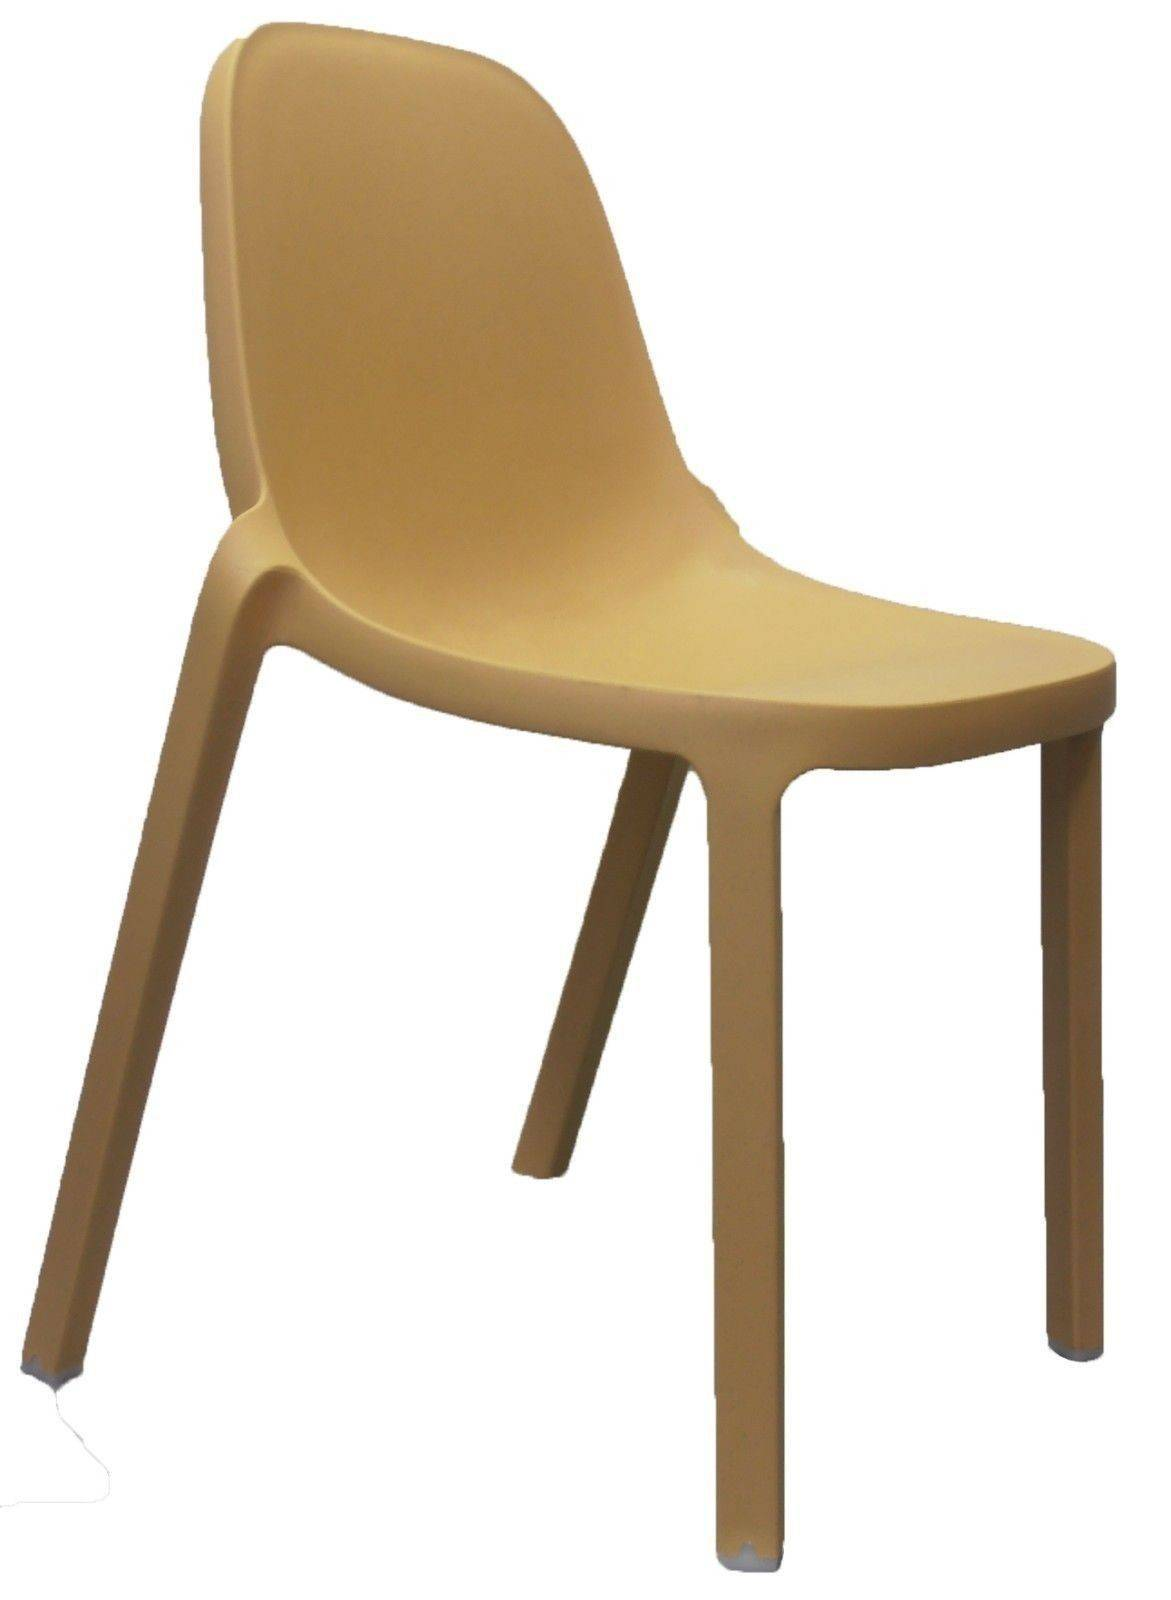 Furniture Chairs Broom Replica Philippe Starck Dining Chair Outdoor